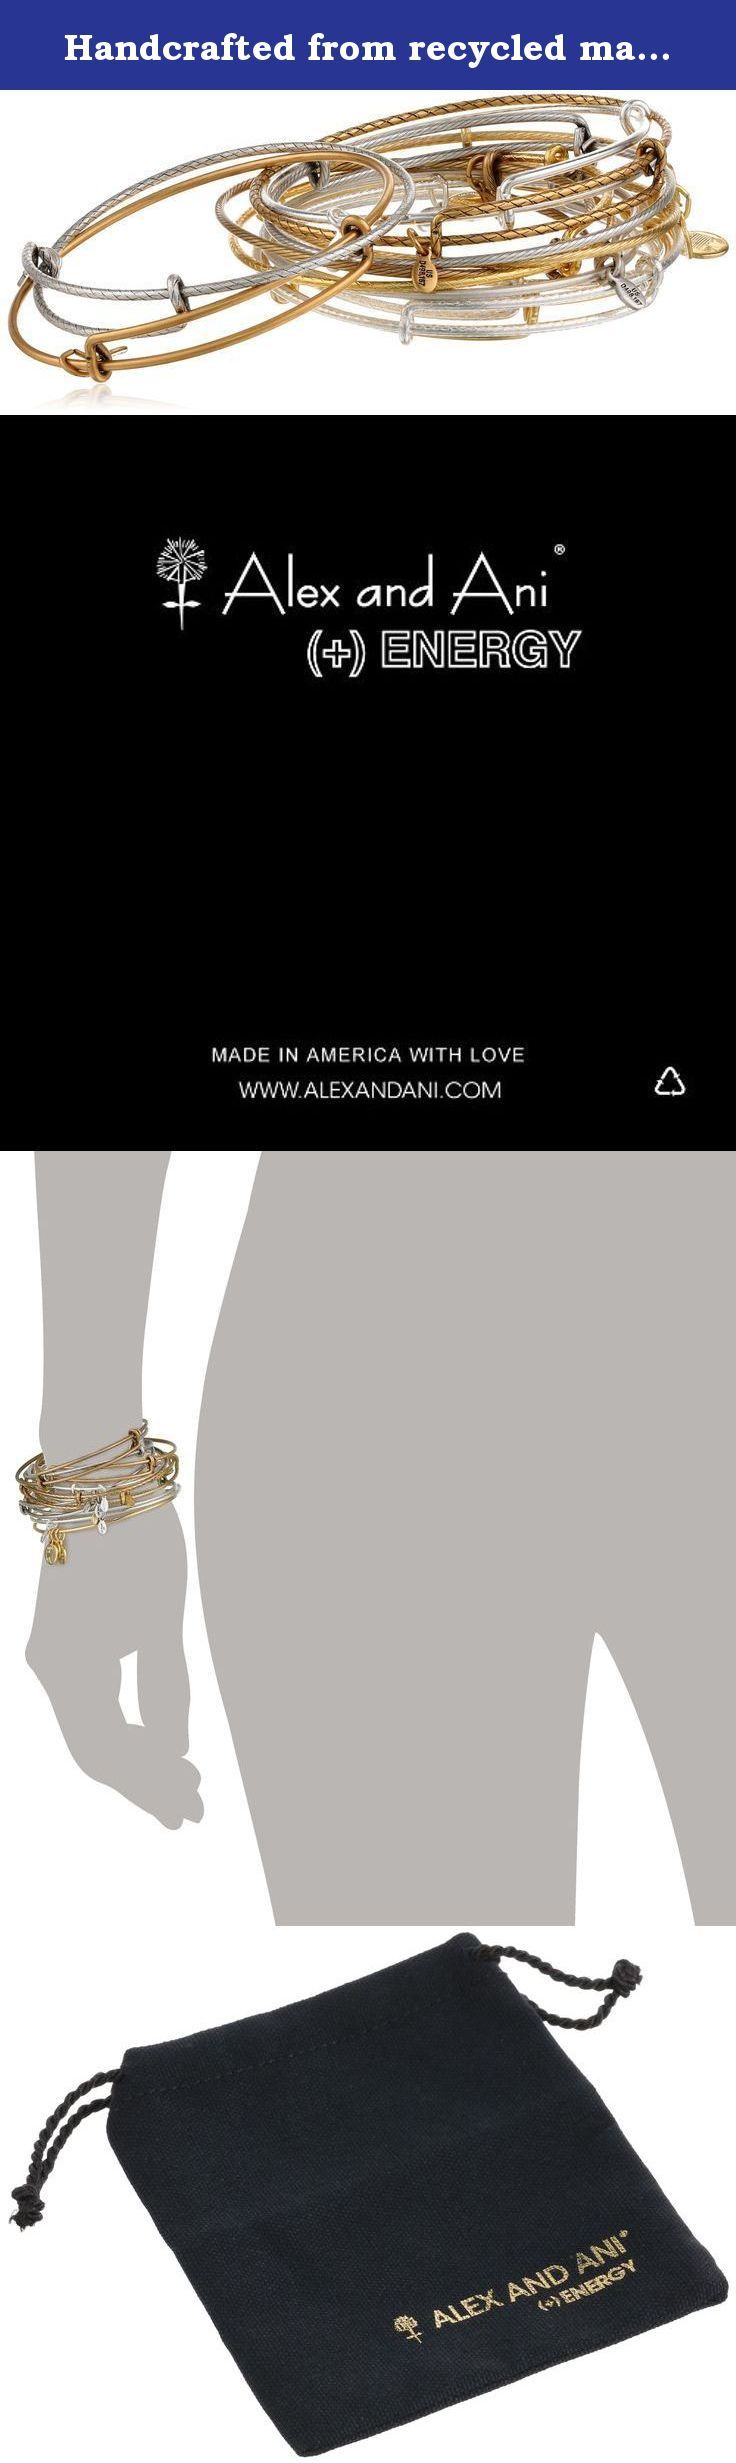 Handcrafted from recycled materials Alex and Ani bangles each hold a unique meaning. Wear alone or layered to create your custom look. The Alex and Ani patented Expandable Wire Bangles come in a set of 12 assorted finishes and textures. Designed to wear alone or to layer for a customized look, Alex and Ani's patented Expandable Wire Bangle is the most innovative concept in jewelry, allowing the wearer, with the slide of a hand, to adjust the bangle for a perfect fit. * Each assorted…